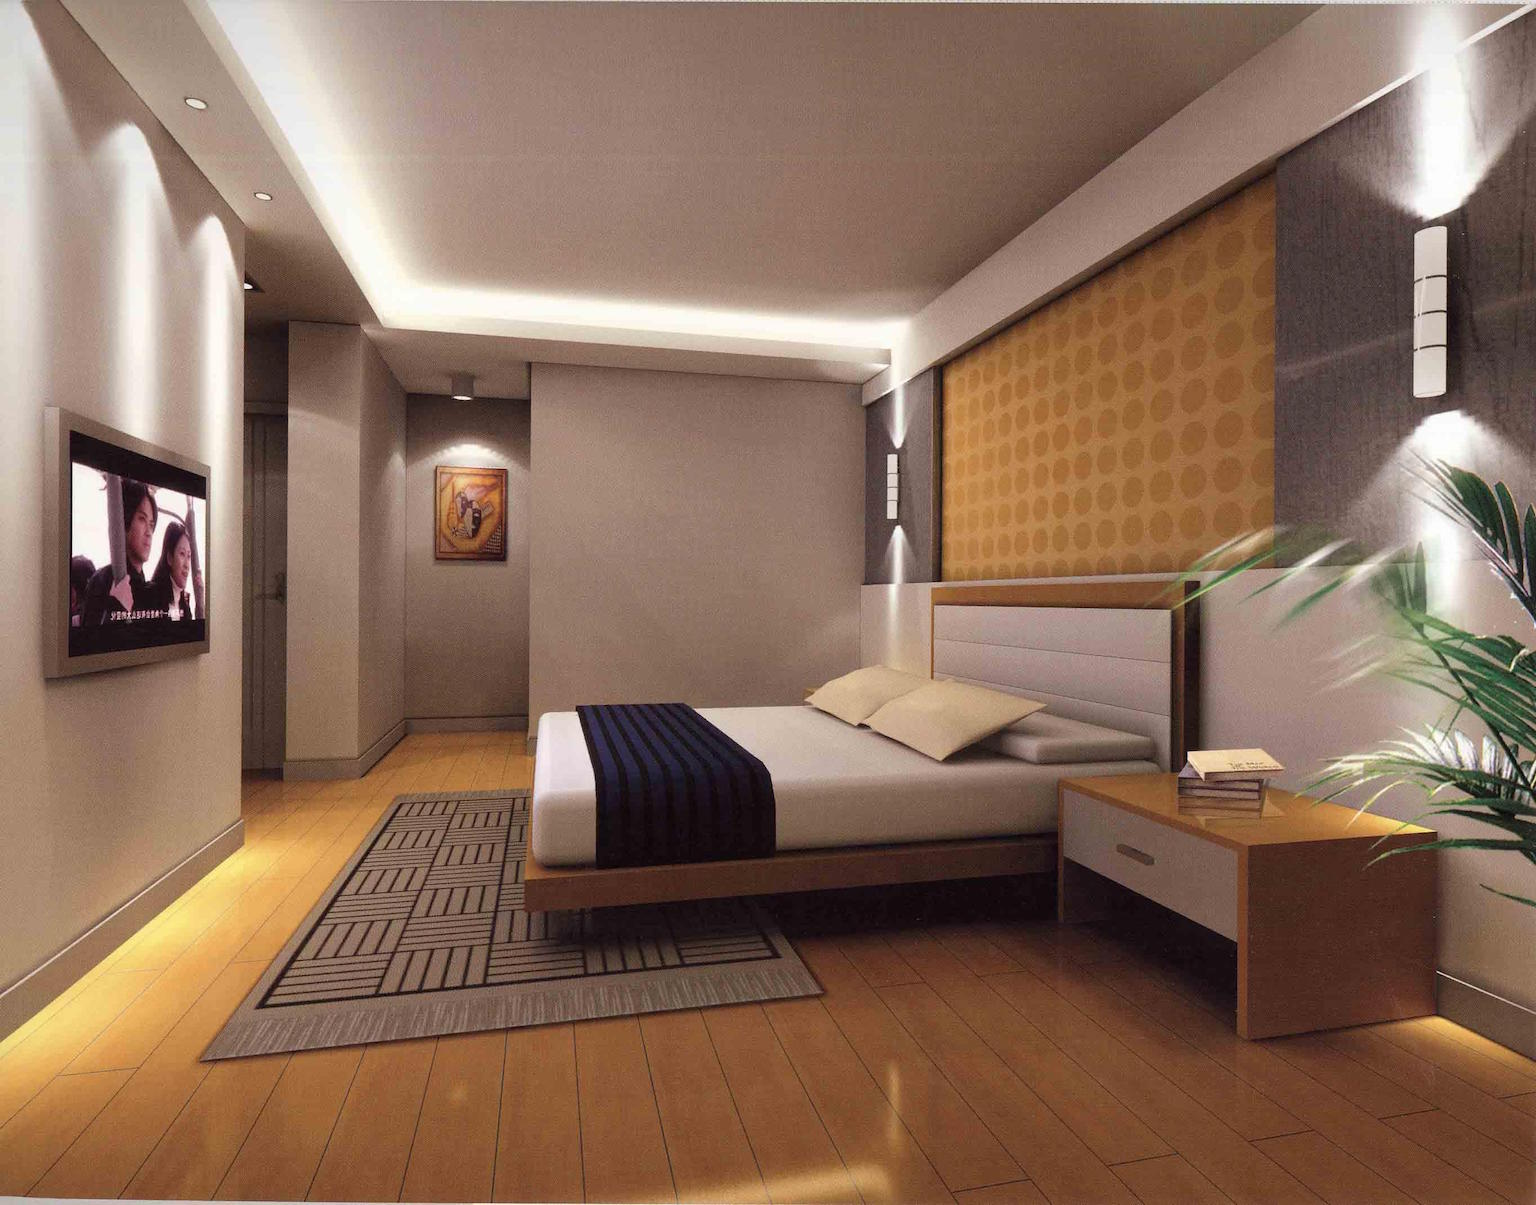 Interior design styles master bedroom for Big bedroom interior design